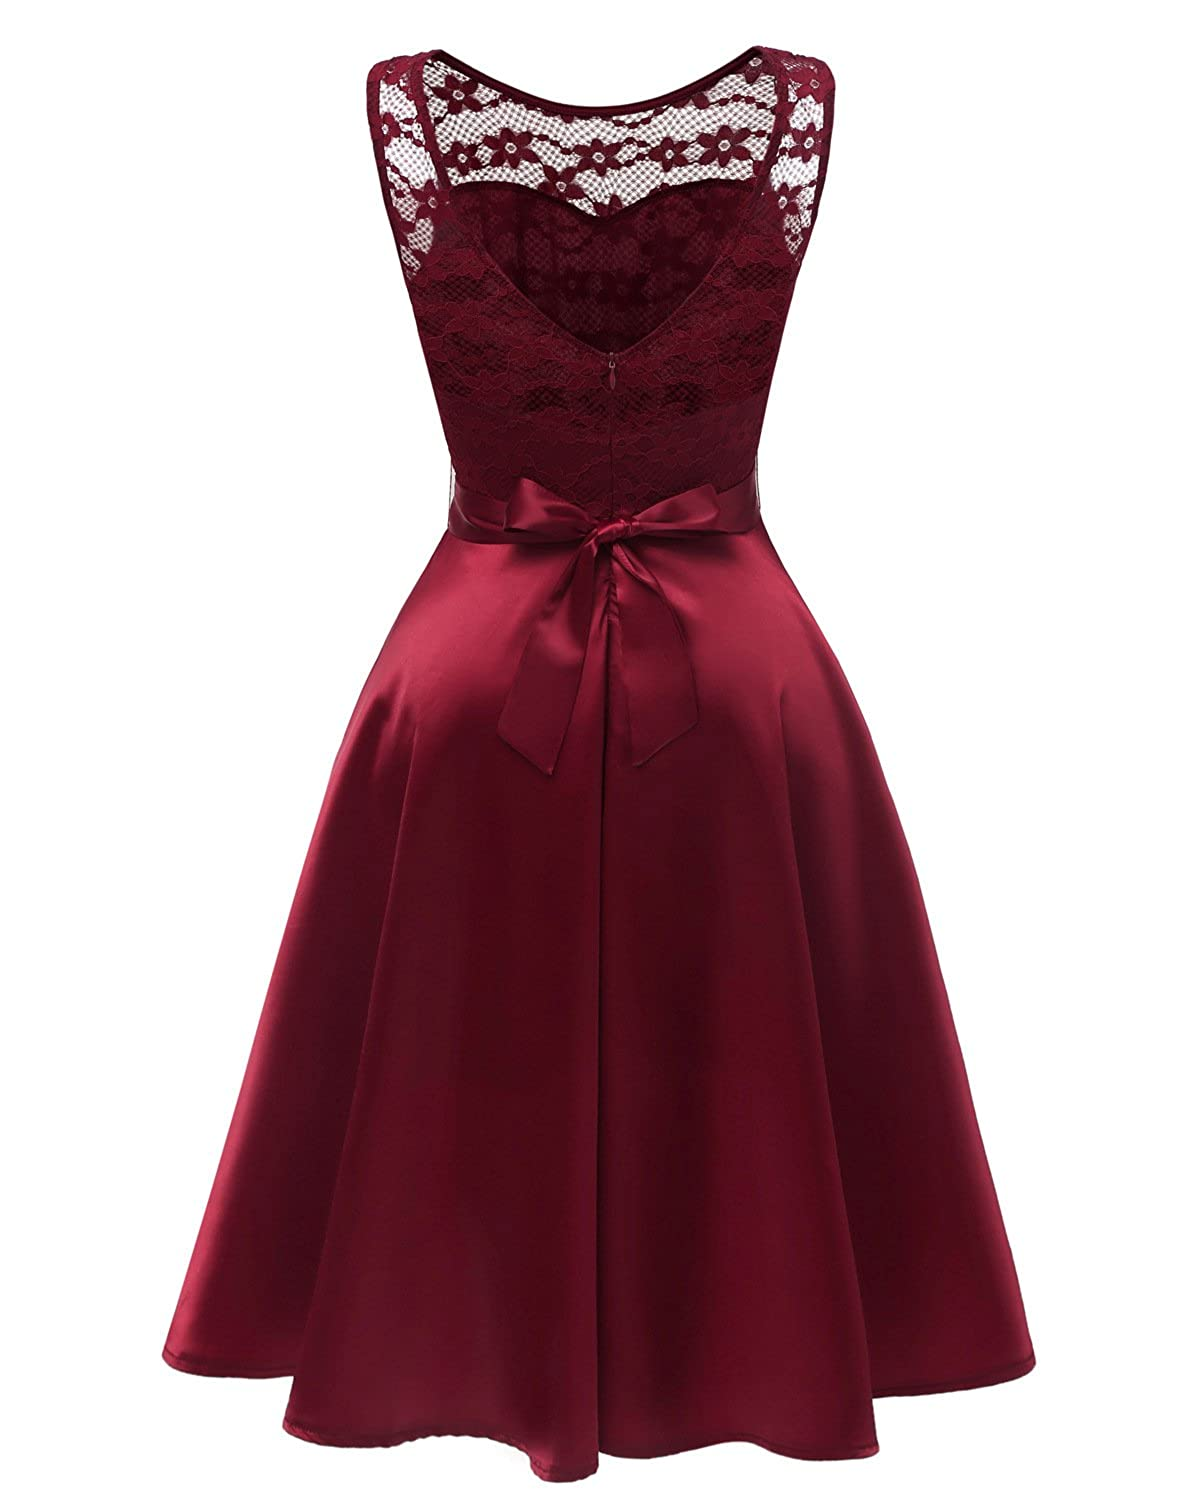 Womens Vintage Lace Wedding Bridesmaid Cocktail Party Flared Swing Dress Sleeveless